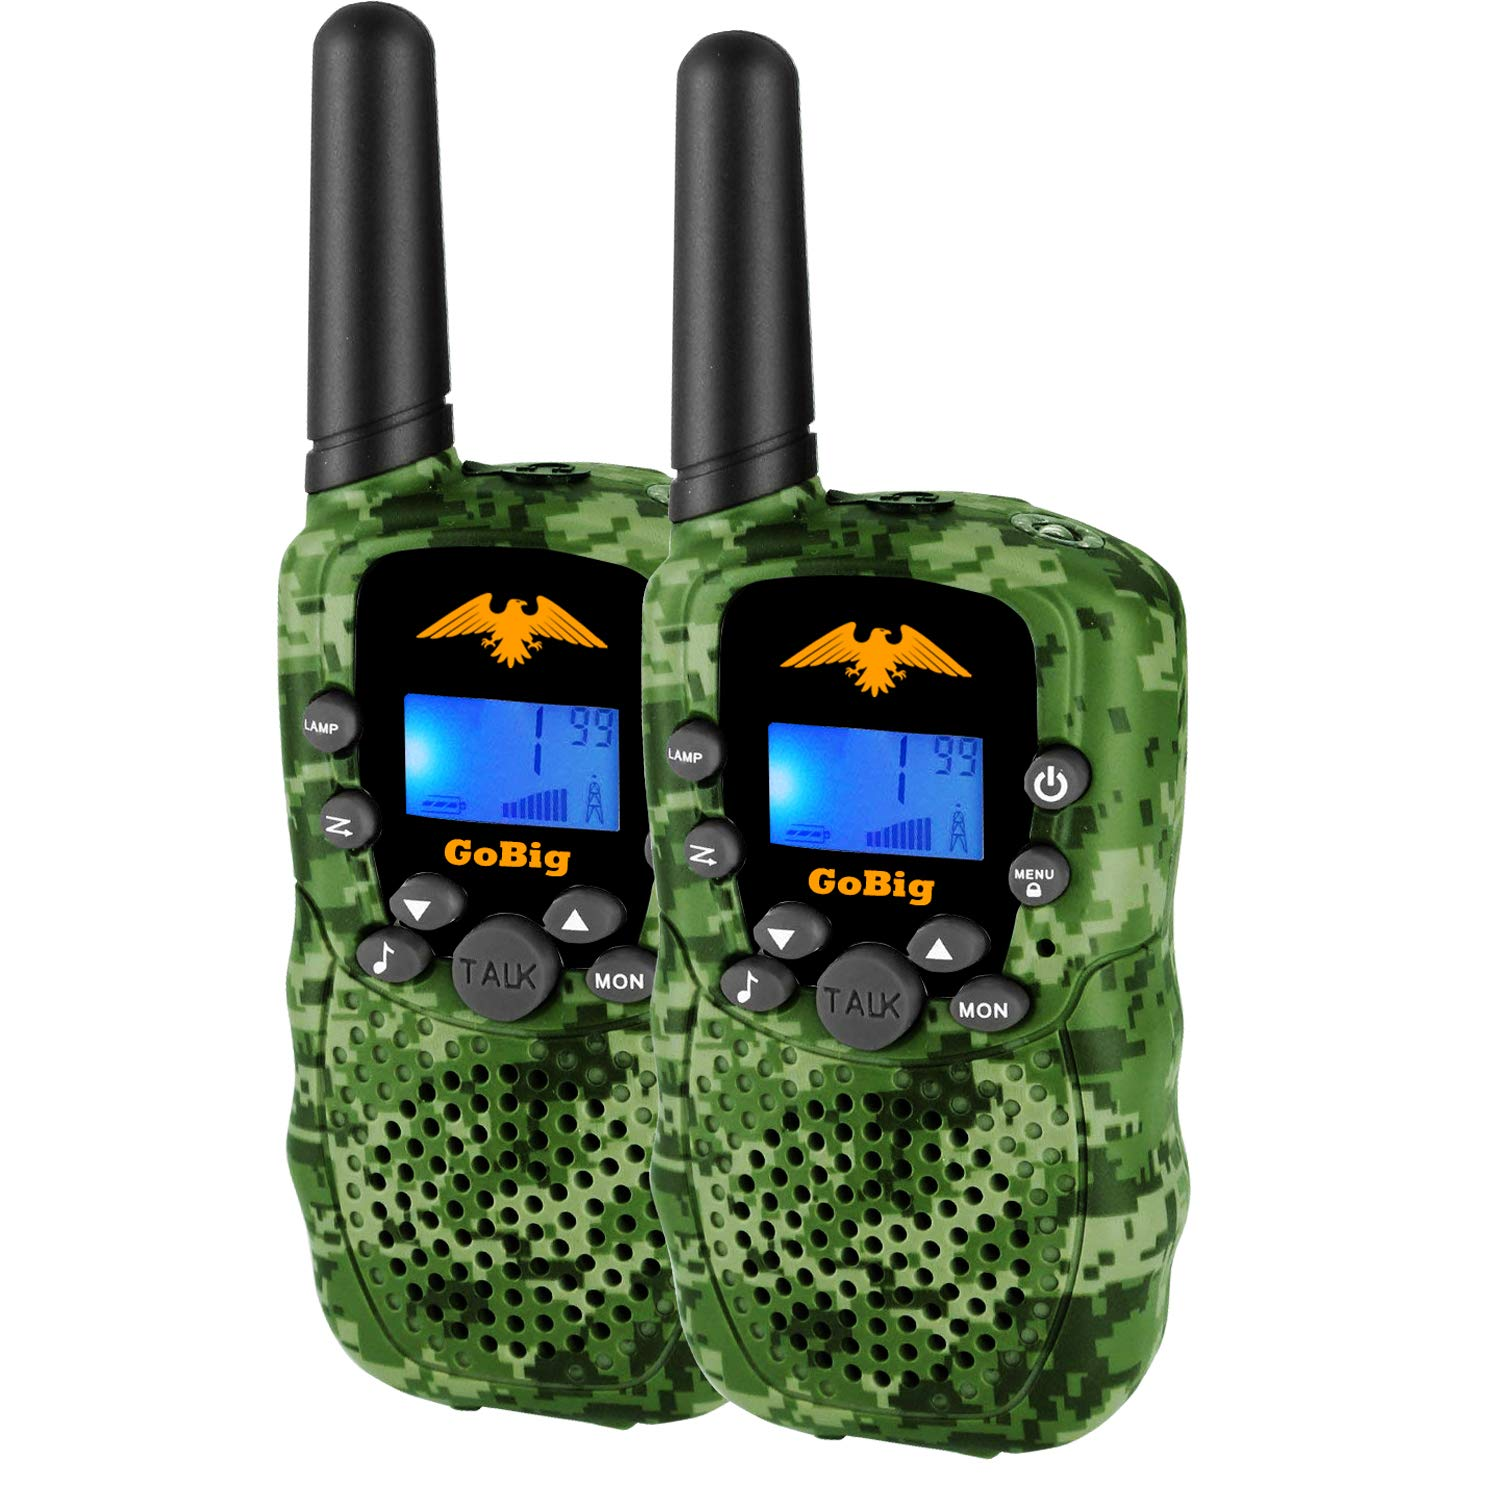 GoBig Walkie Talkies for Kids Voice Activated Walkie Talkies for Adults and Kids 3 Mile Range 2 Way Radio Walkie Talkies Built in Flash Light Camo Green (2 Pack) by GoBig (Image #3)